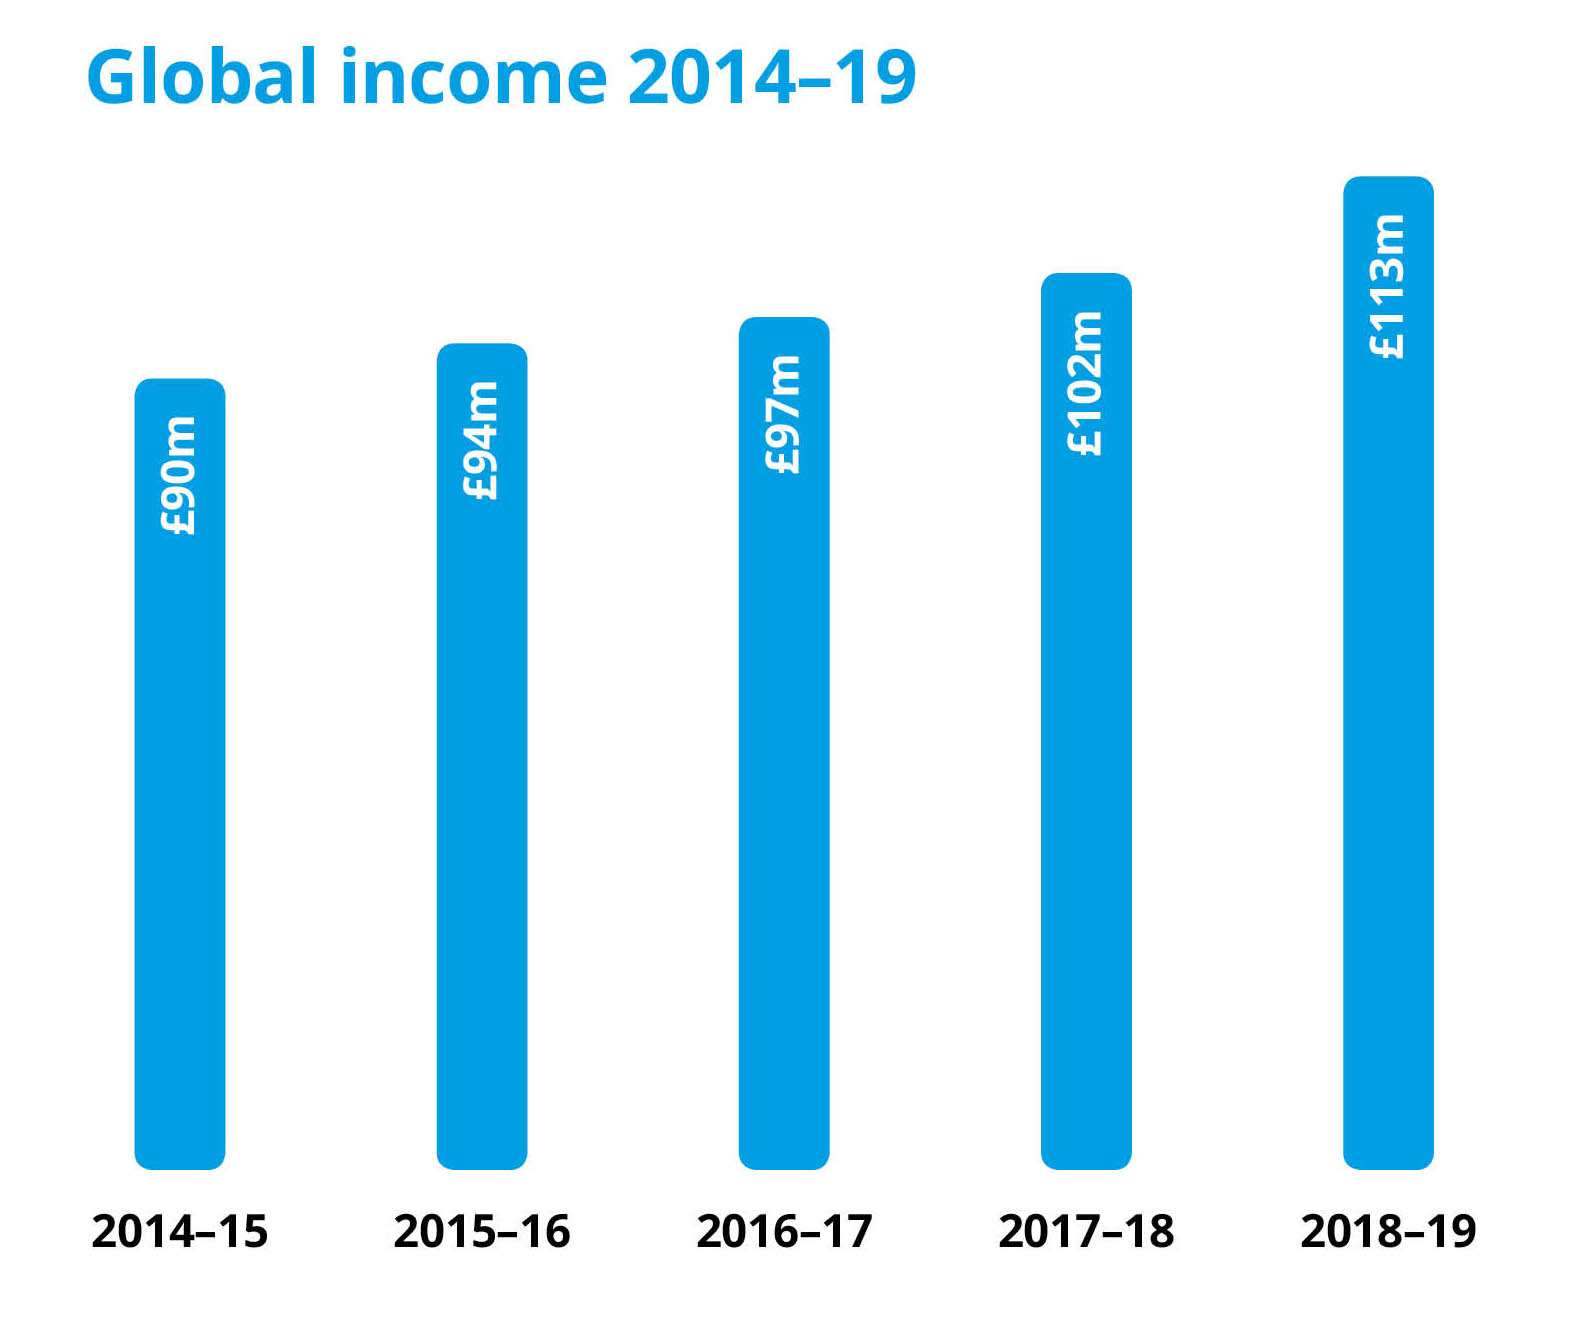 Bar chart showing global income from 2014 to 2019. In 2014-15 = £90m, in 2015-16 = £94m, in 2016-17 = £97m, in 2017-18 = £102m, in 2019-19 = £113m.